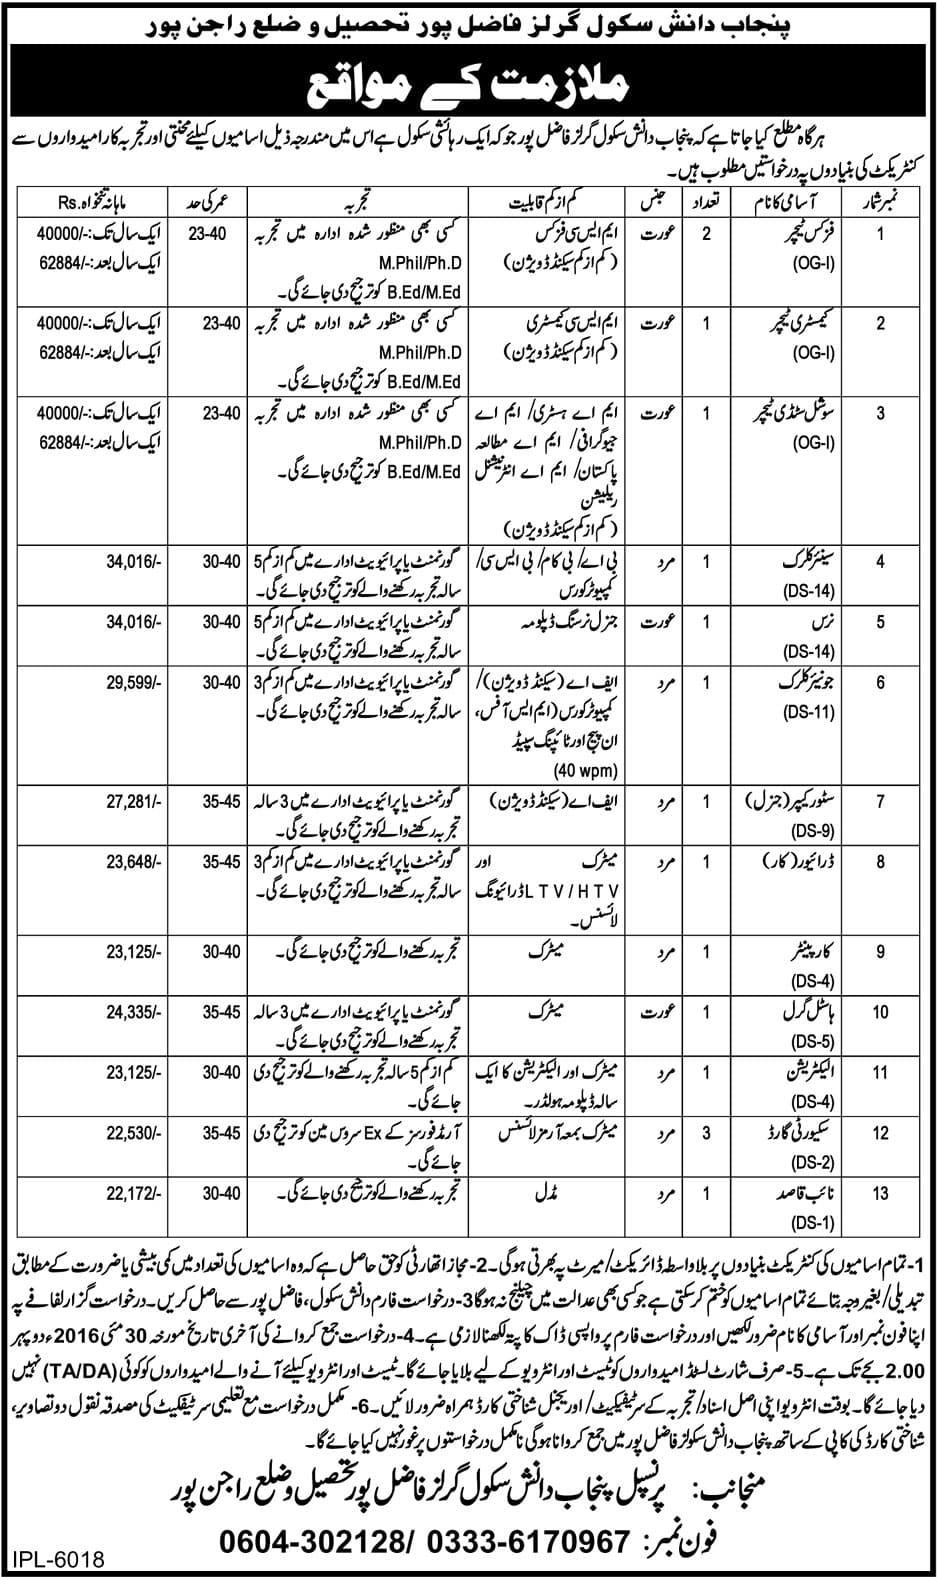 Latest Jobs in Punjab Daanish School Girls Fazil Pur